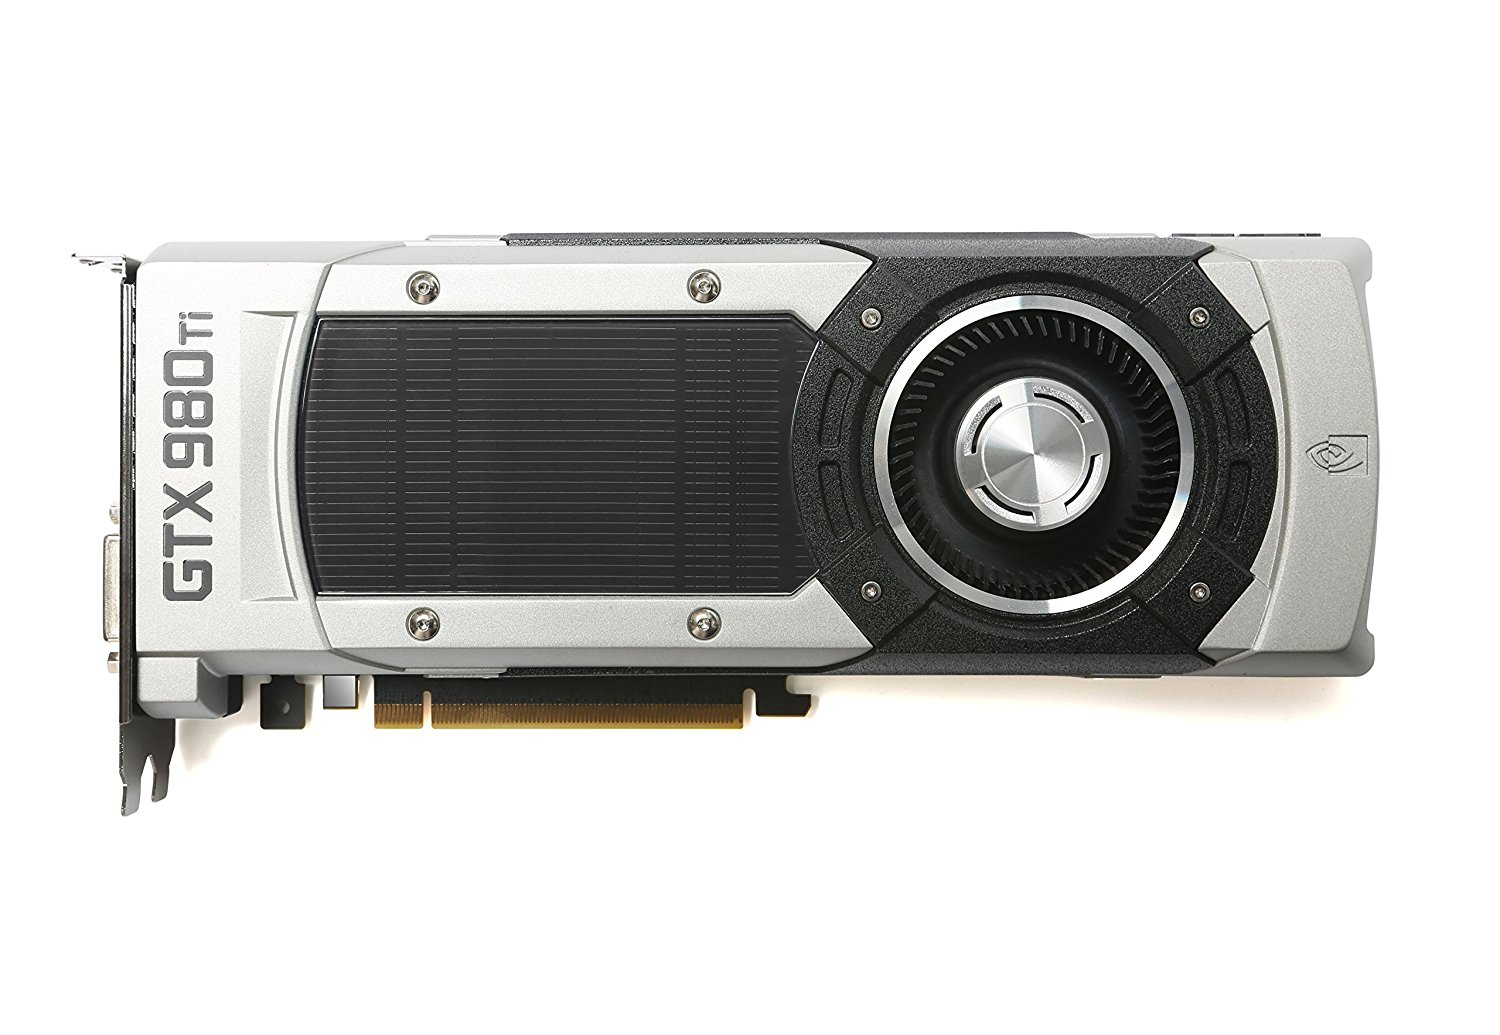 ZOTAC GeForce GTX 980Ti 6GB